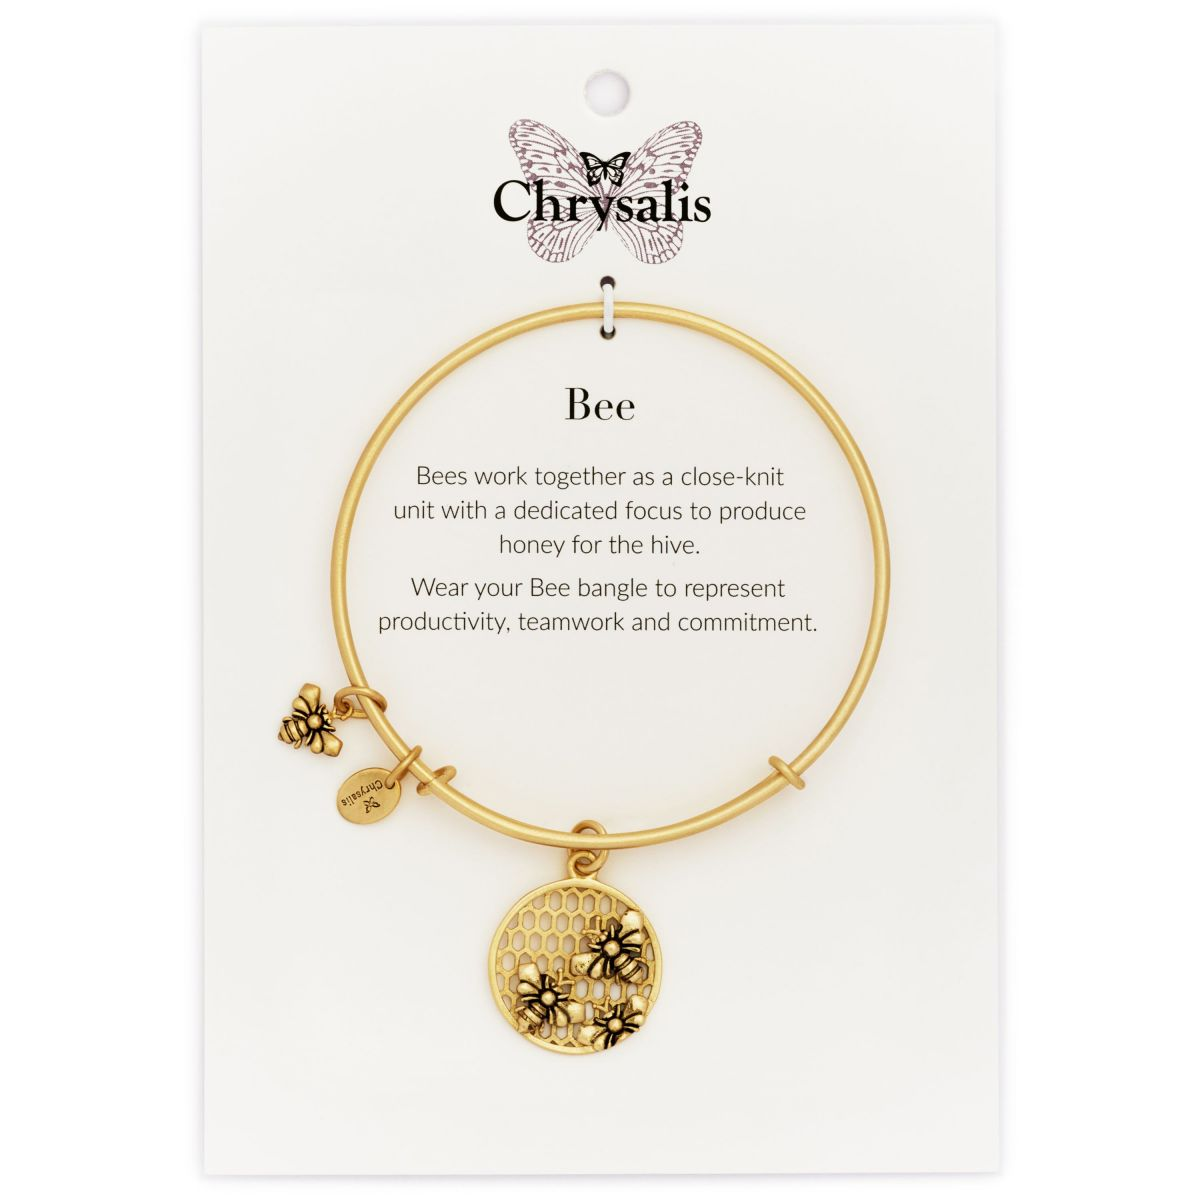 Chrysalis Spirited Bee Gold Plated Bangle CRBT1206GP wUP1XLbj